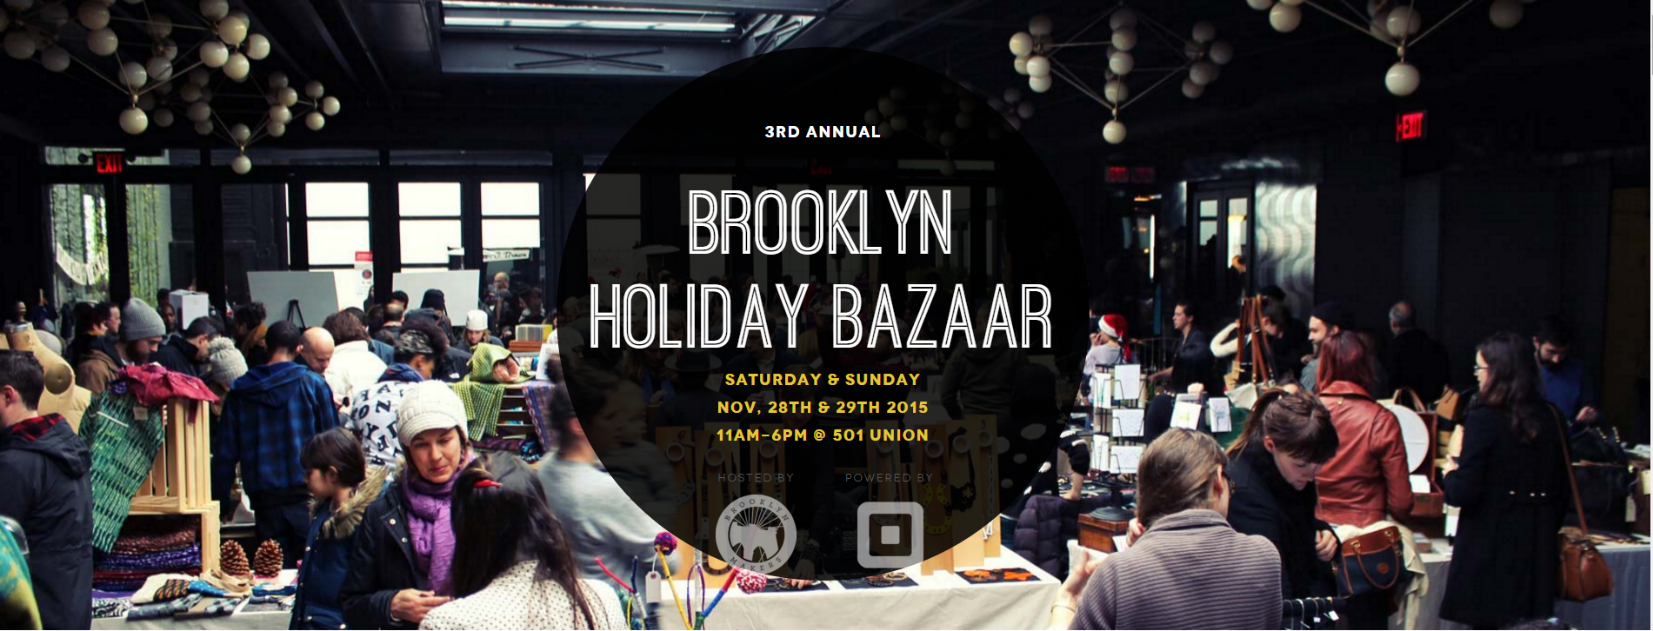 Brooklyn Holiday Bazaar Event This Weekend